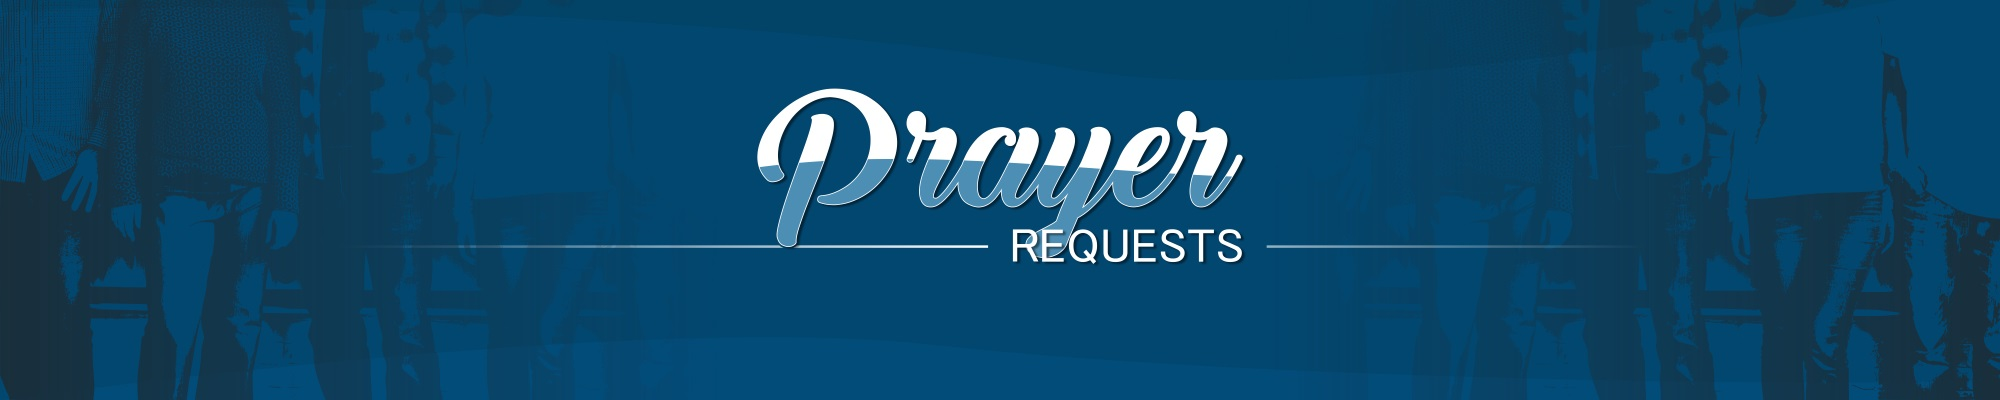 Prayer Requests - When two or three or more gathererd He is present.